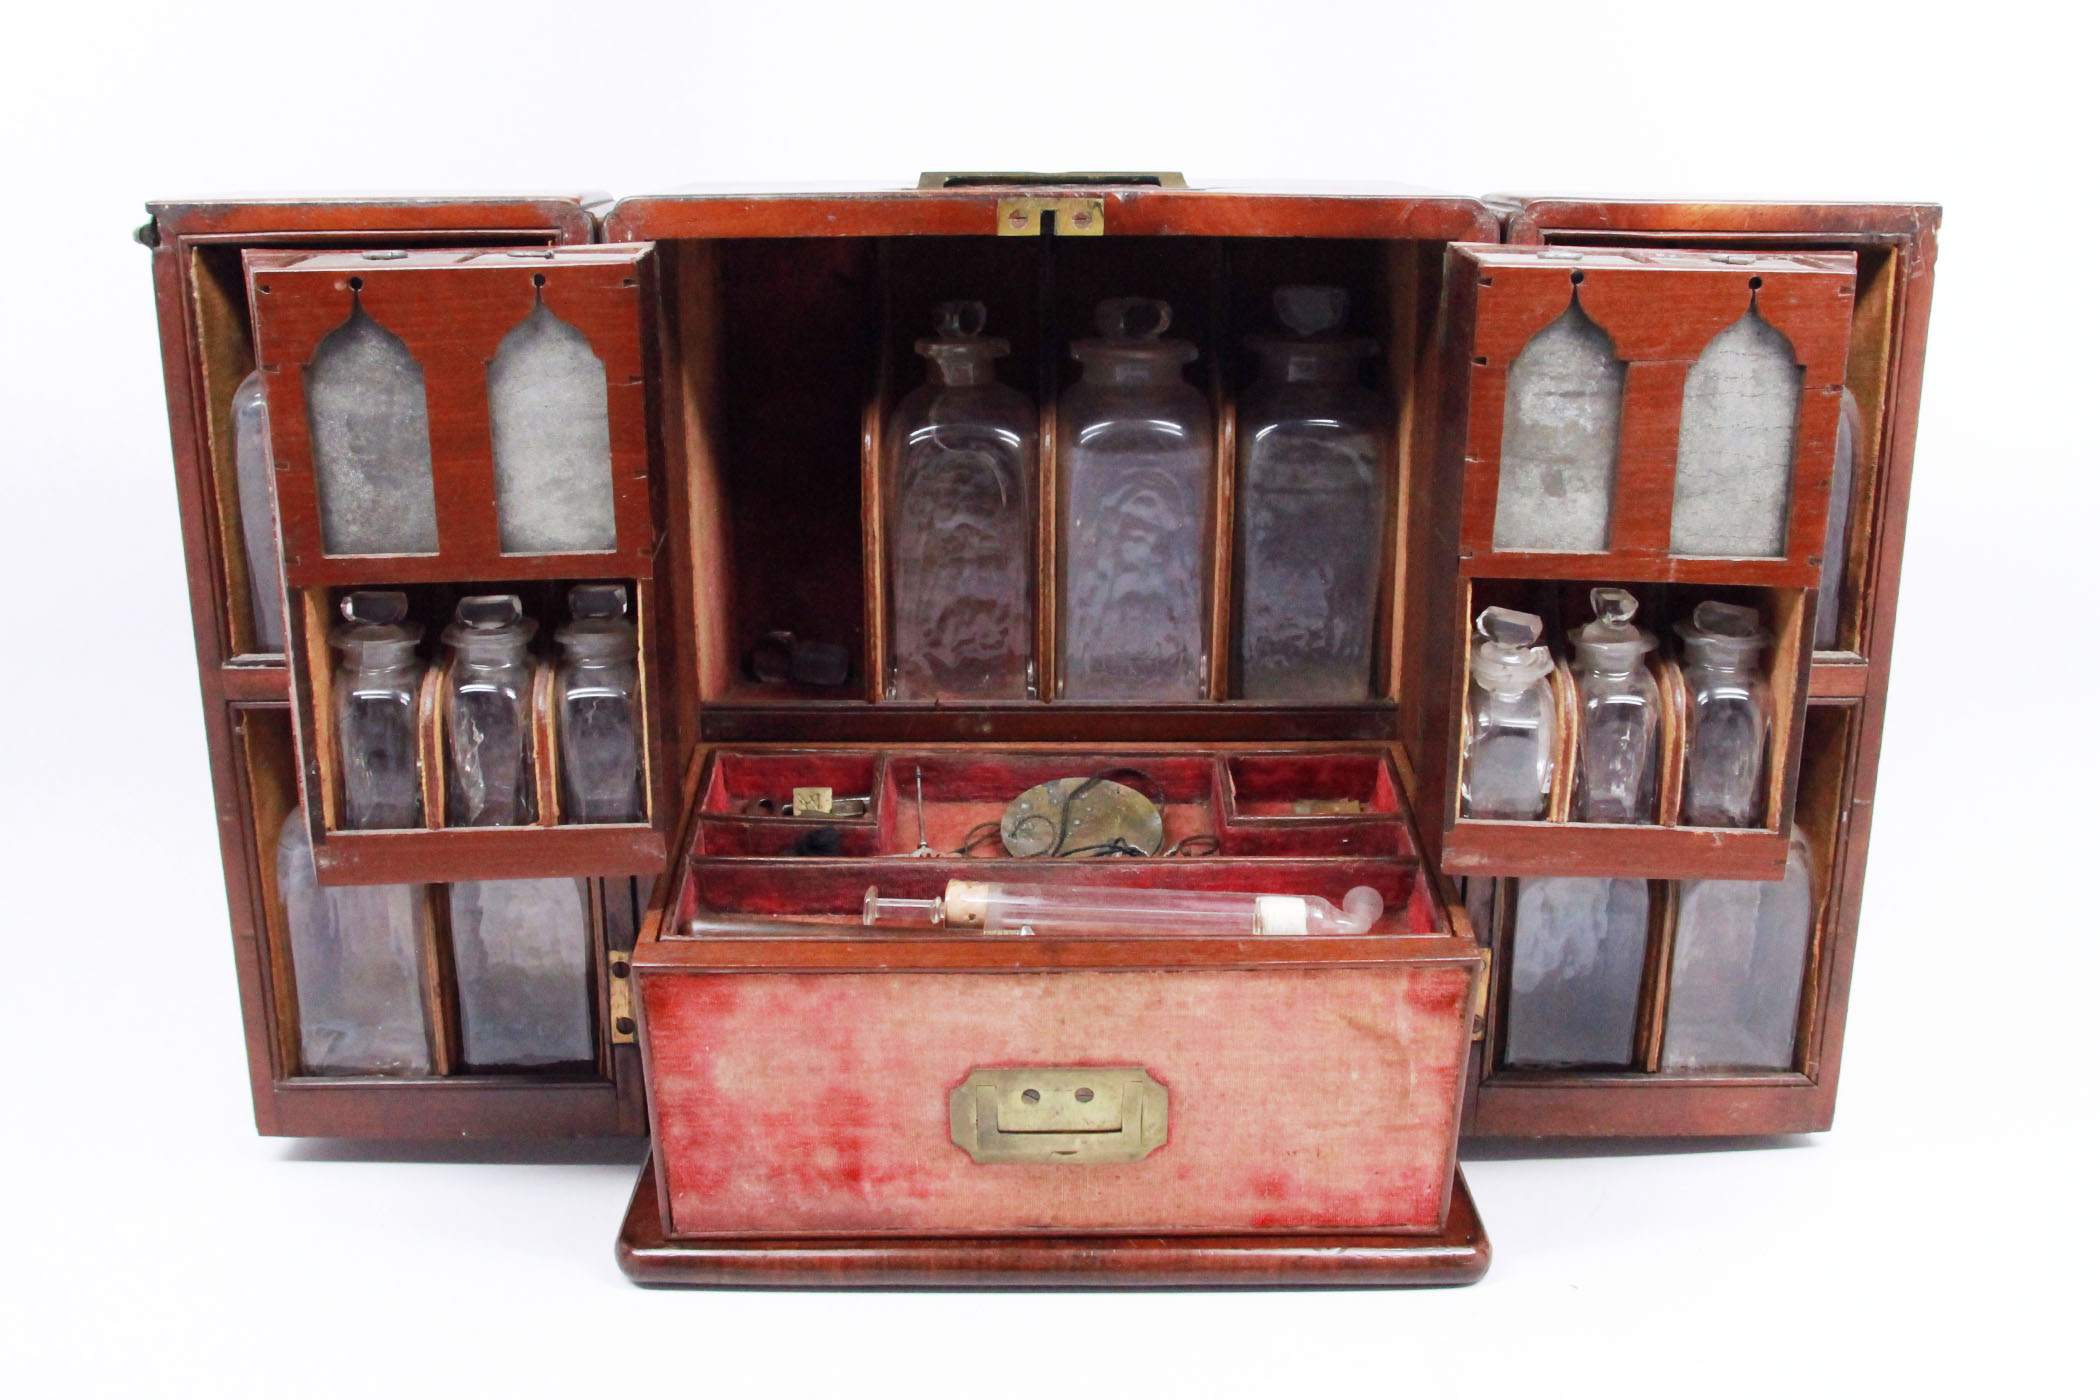 A DOMESTIC APOTHECARY MEDICINE CHEST WITH UNIQUE INTERIOR DOUBLE DOORS  BEAUTIFULLY UPHOLSTERED MADE OF SOLID MAHOGANY WOOD CIRCA EARLY TO MID  1800S.